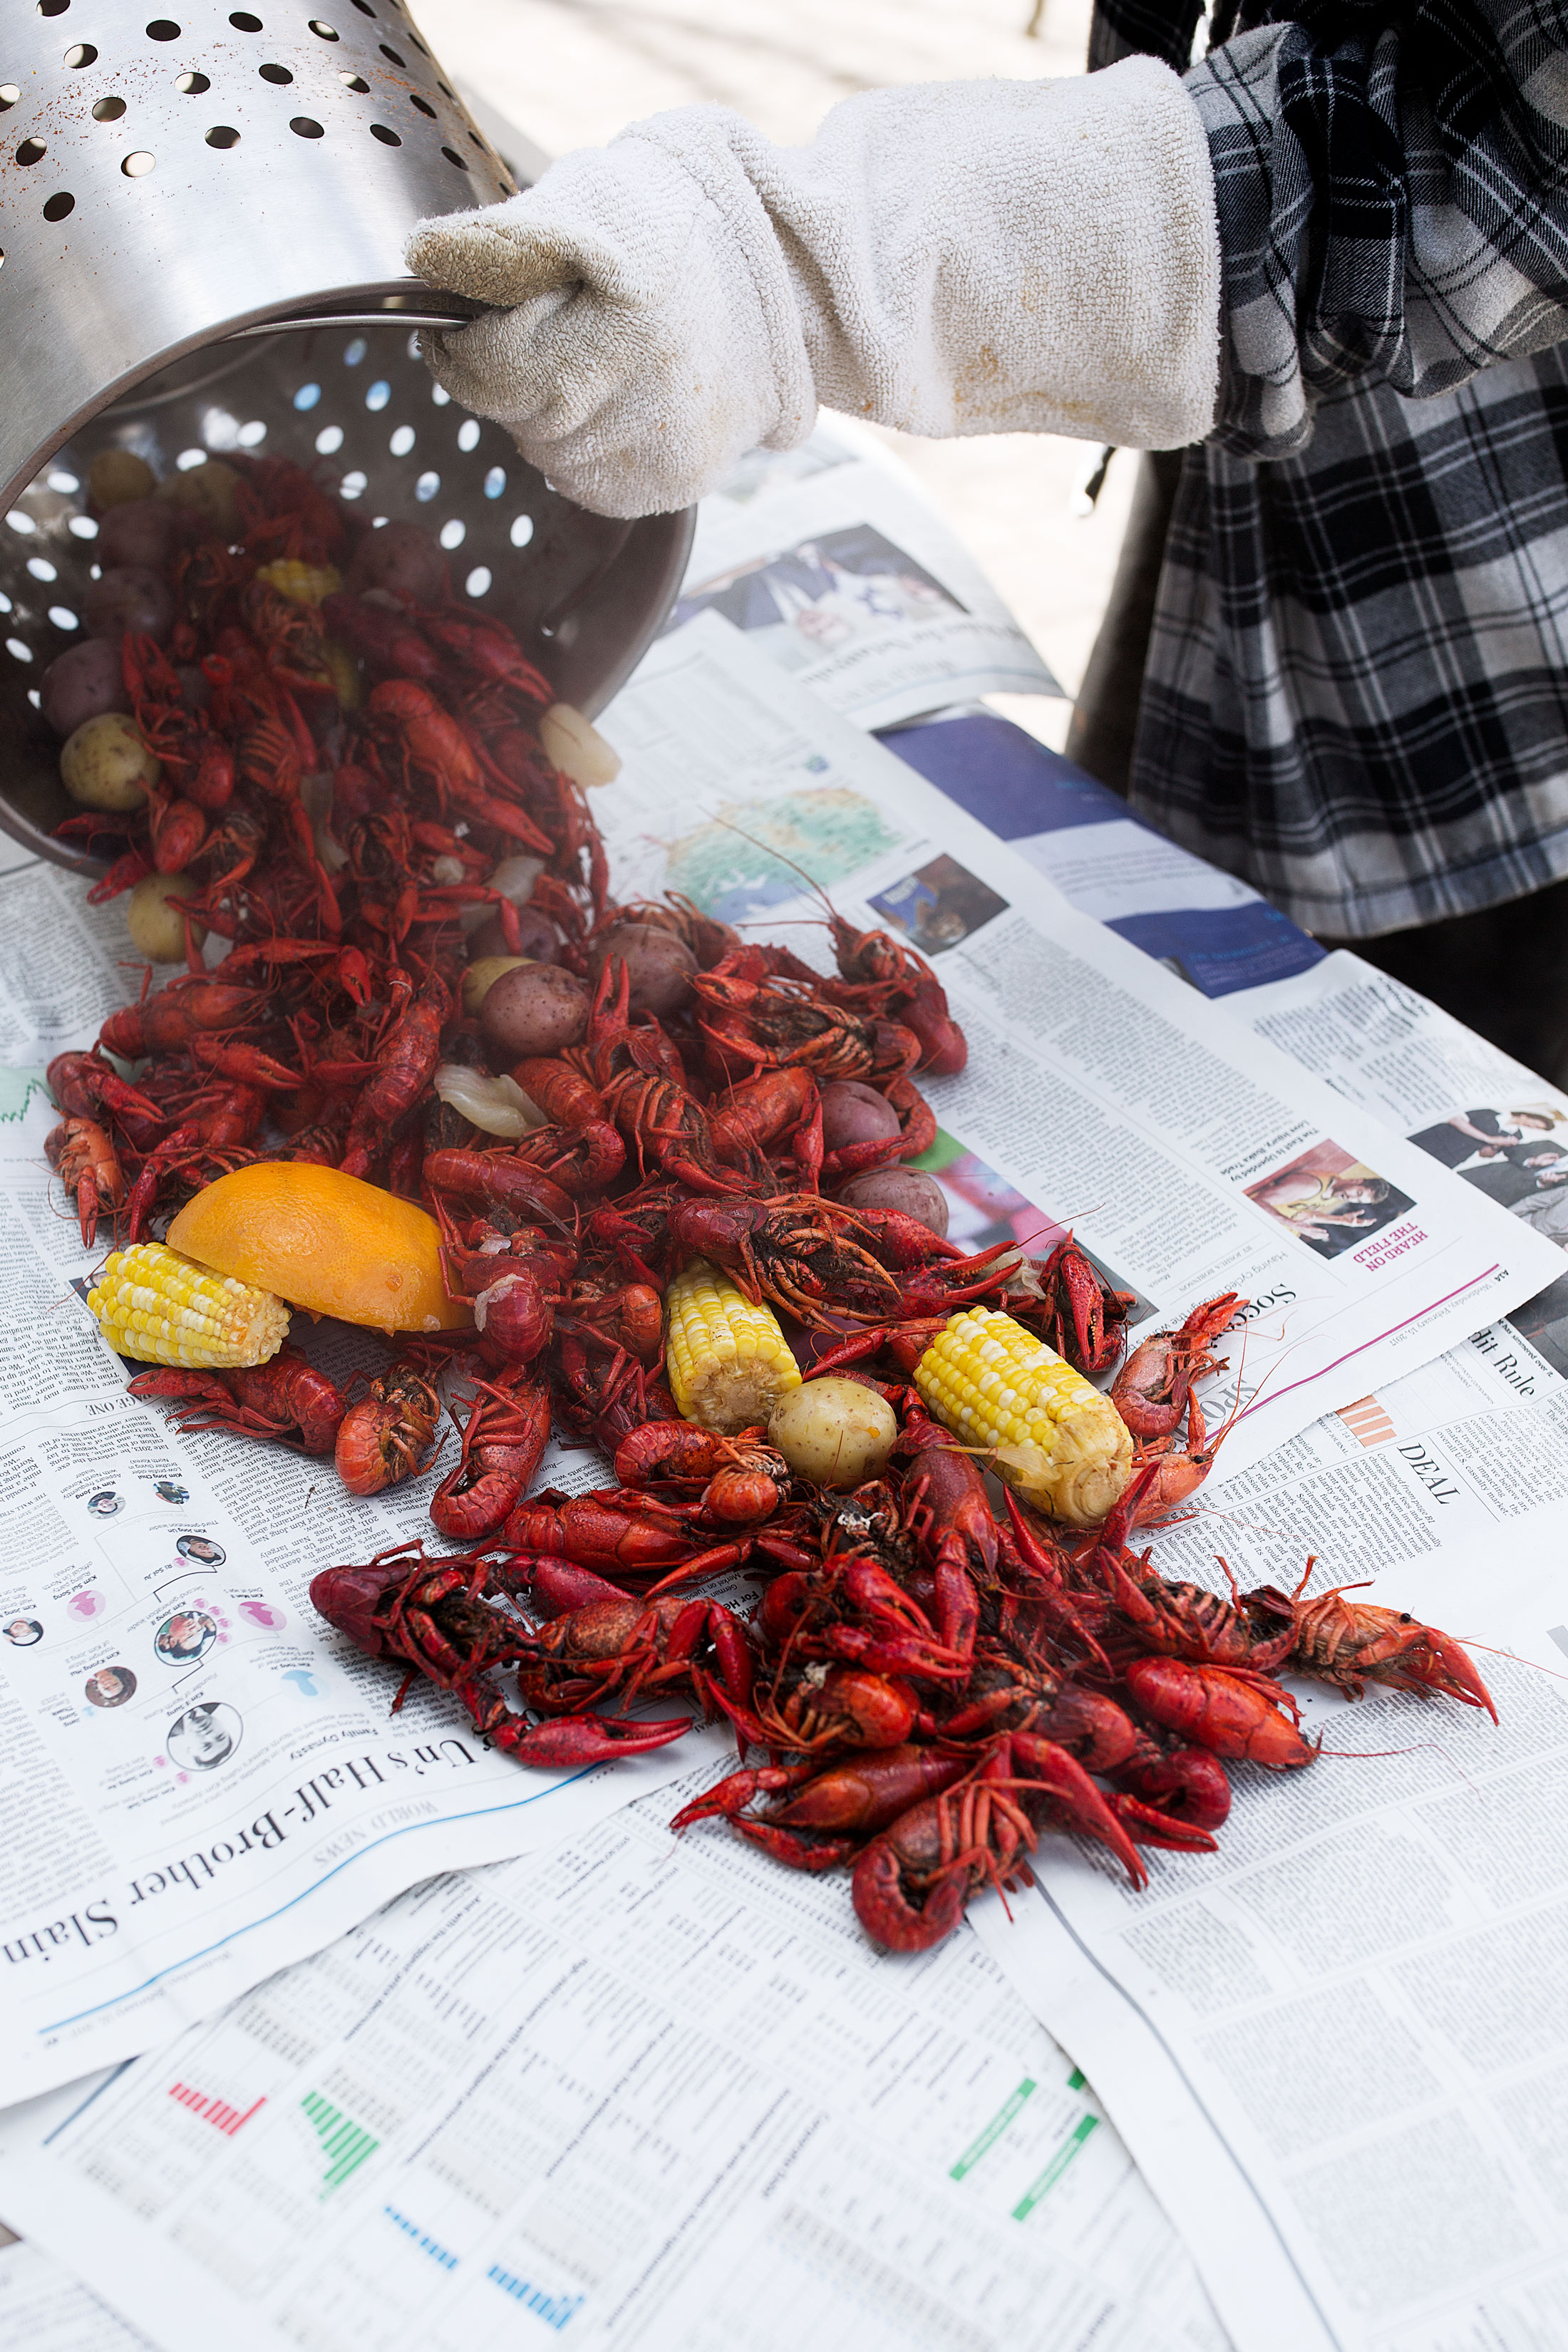 pouring out crawfish onto table